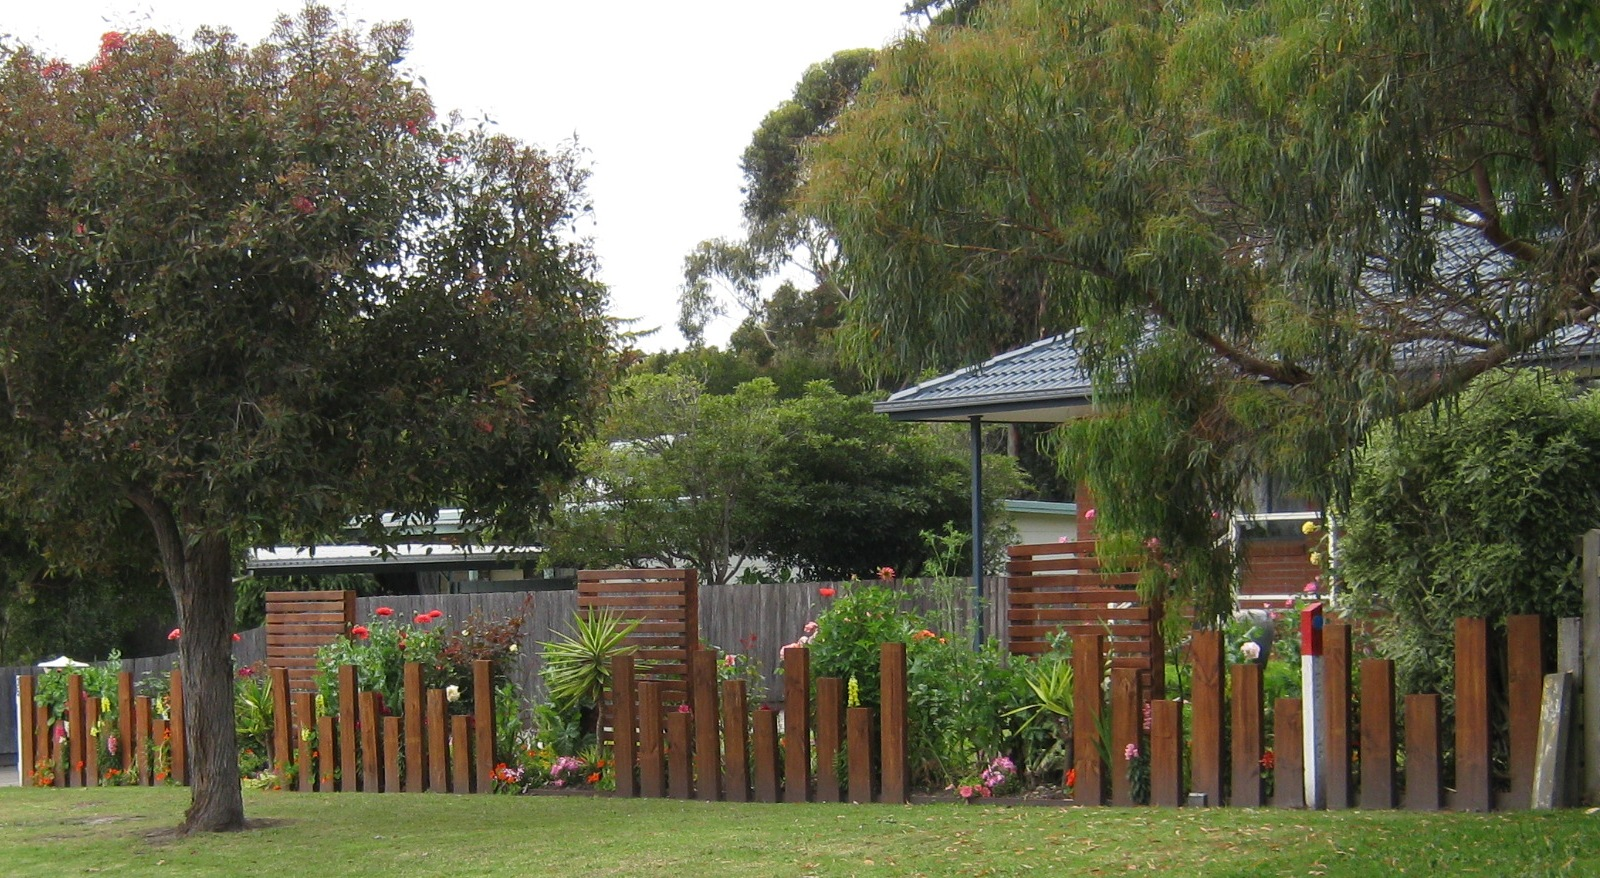 Redgum Sleeper Fence